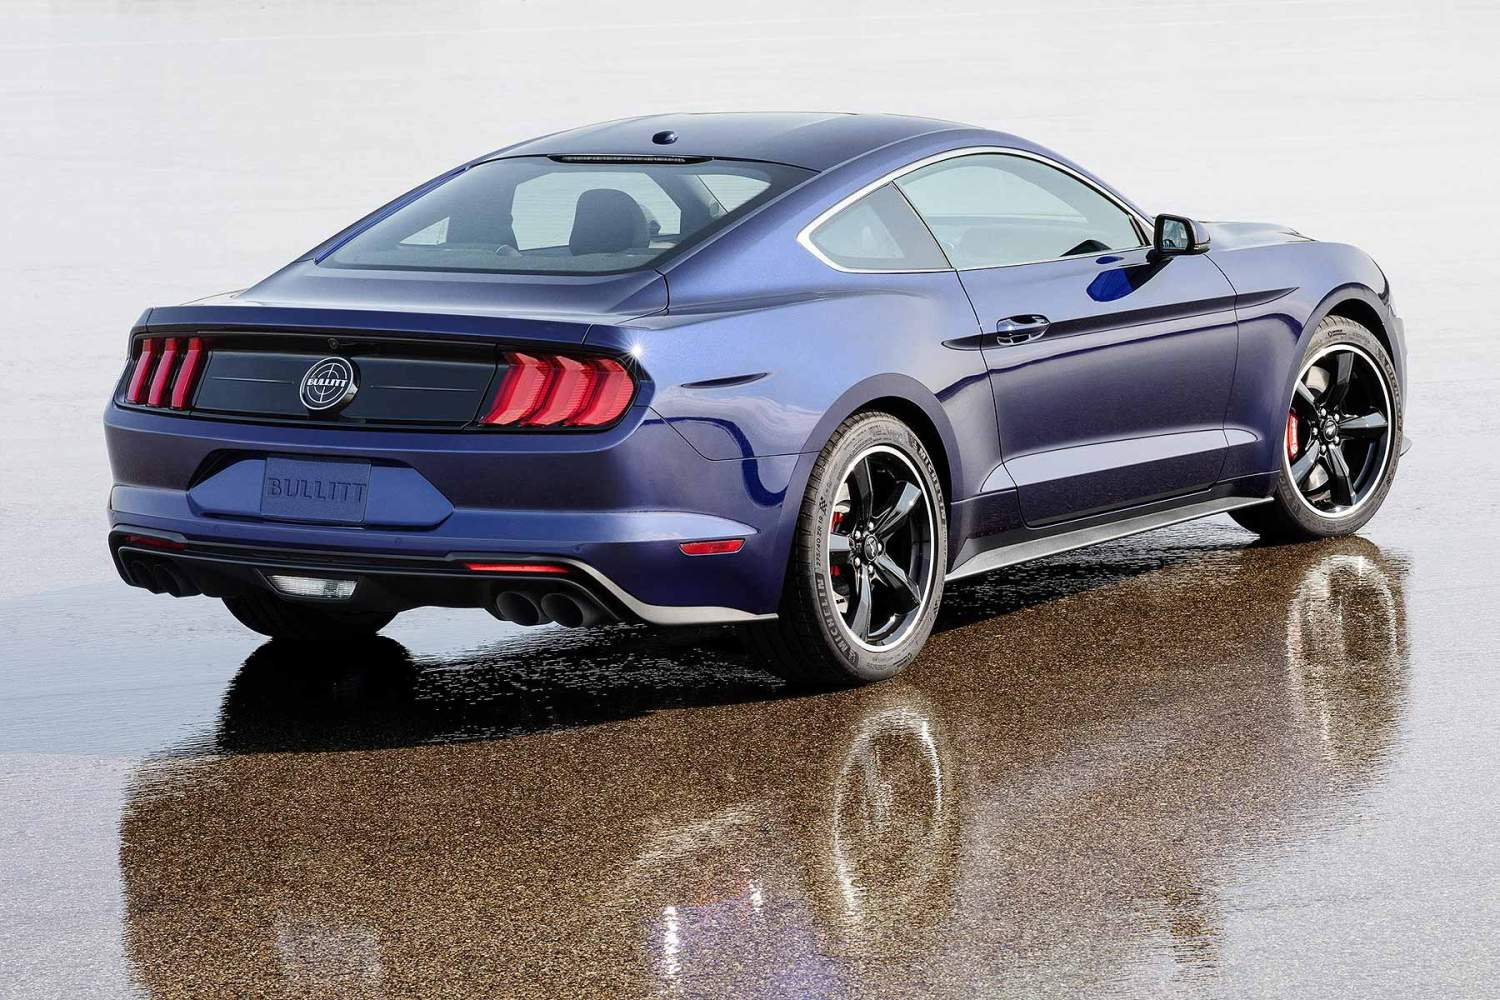 Ford Mustang Bullitt in Kona Blue